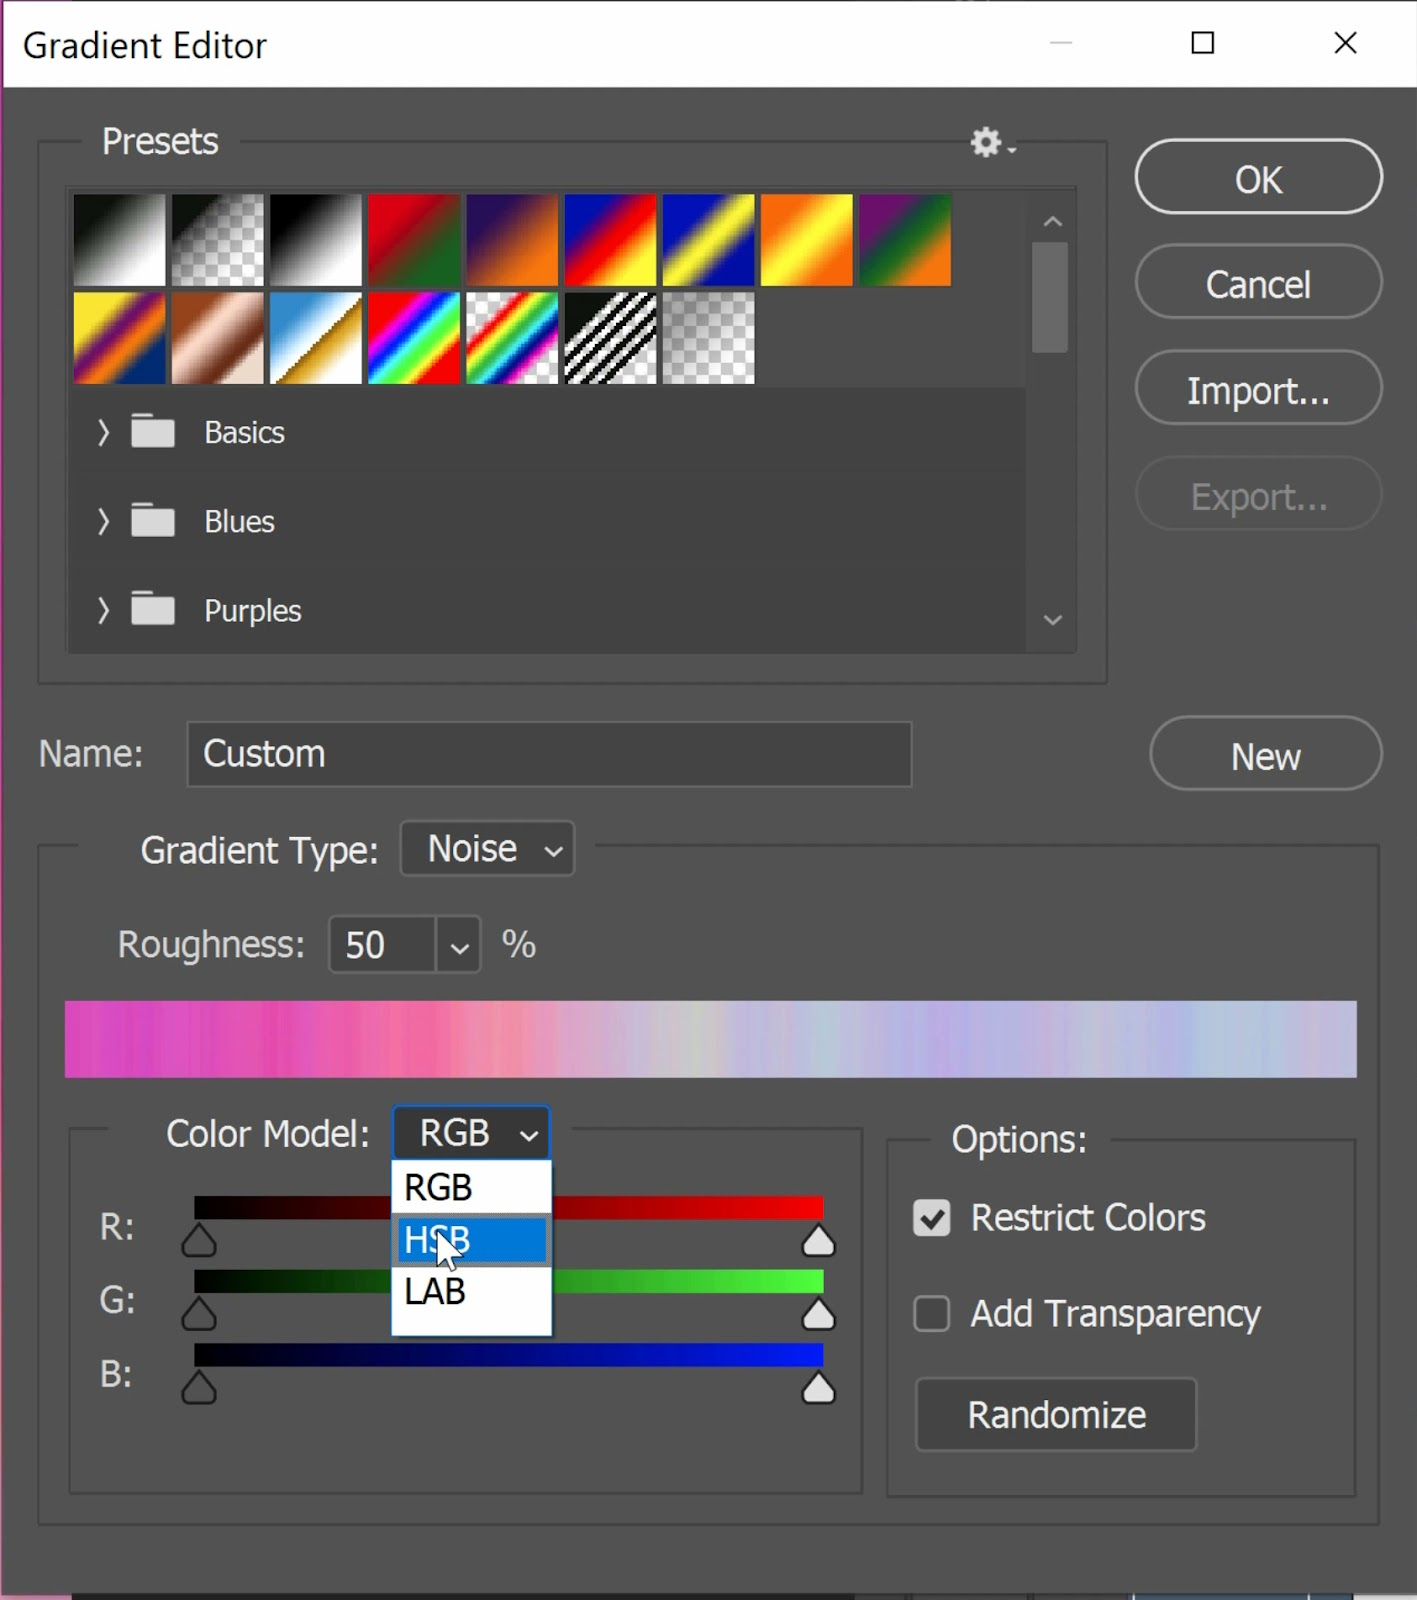 Change the Color Model to HSB and use the H, S, and B sliders to control the color of the noise.